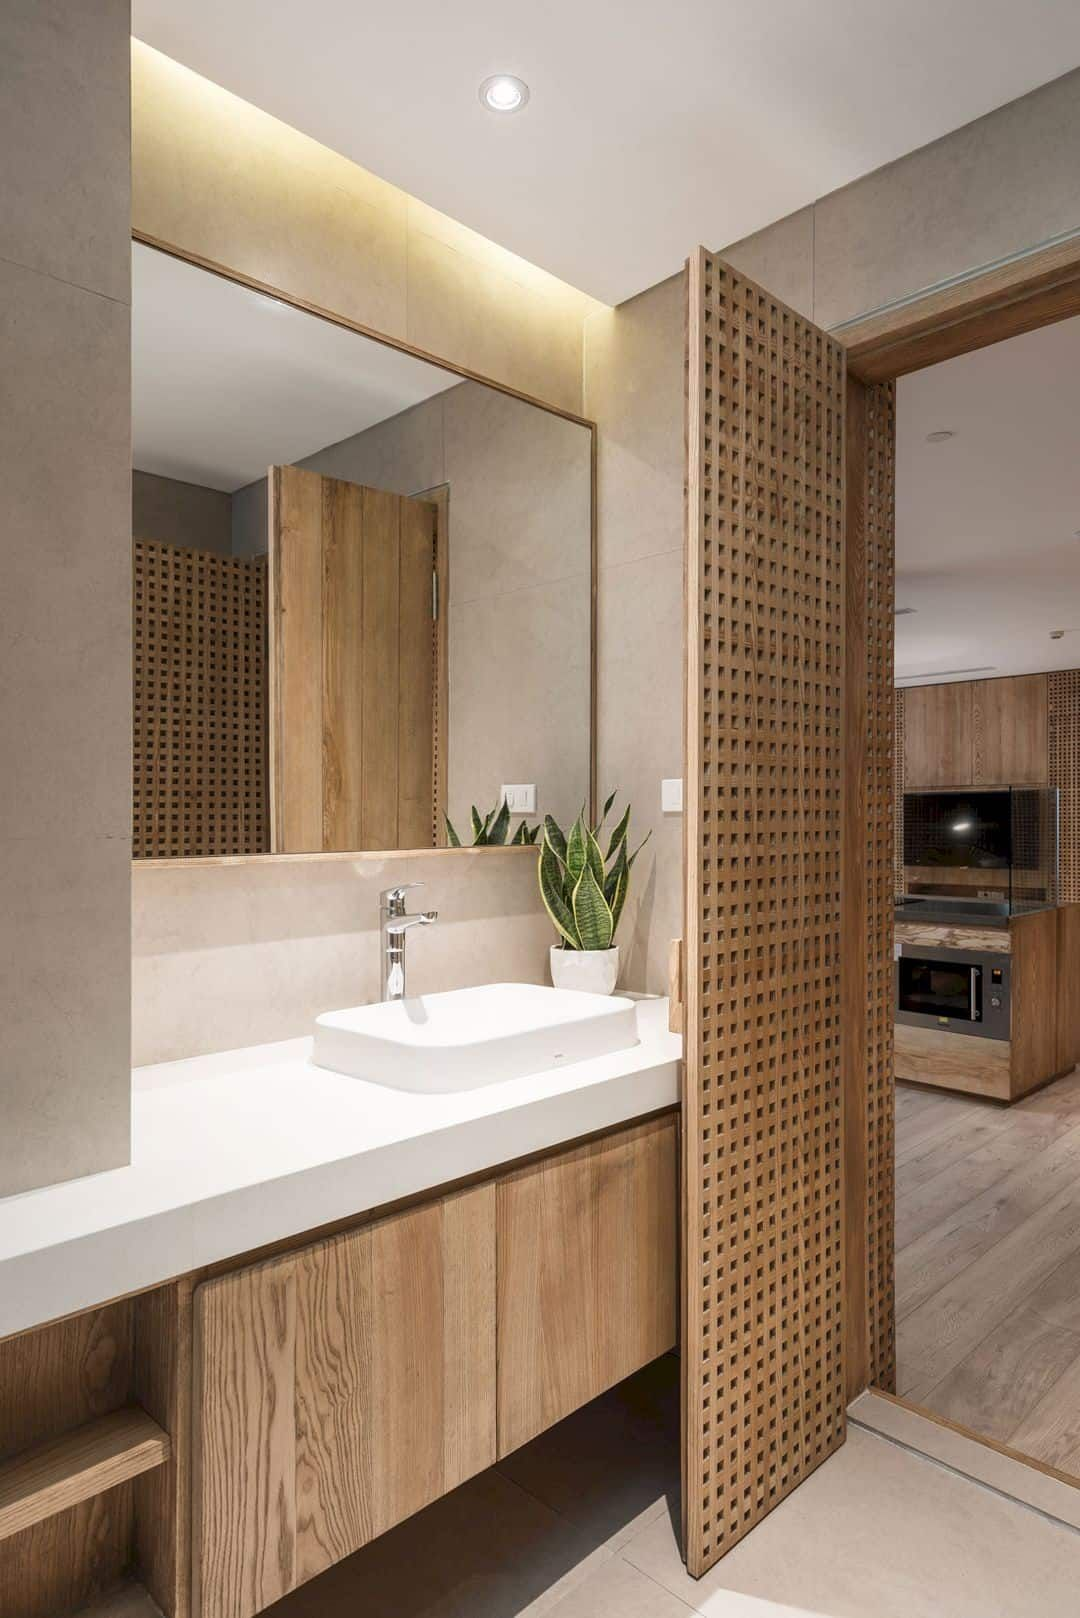 Joinery A Apartment Renovation With 29000 Separated Wooden Pieces